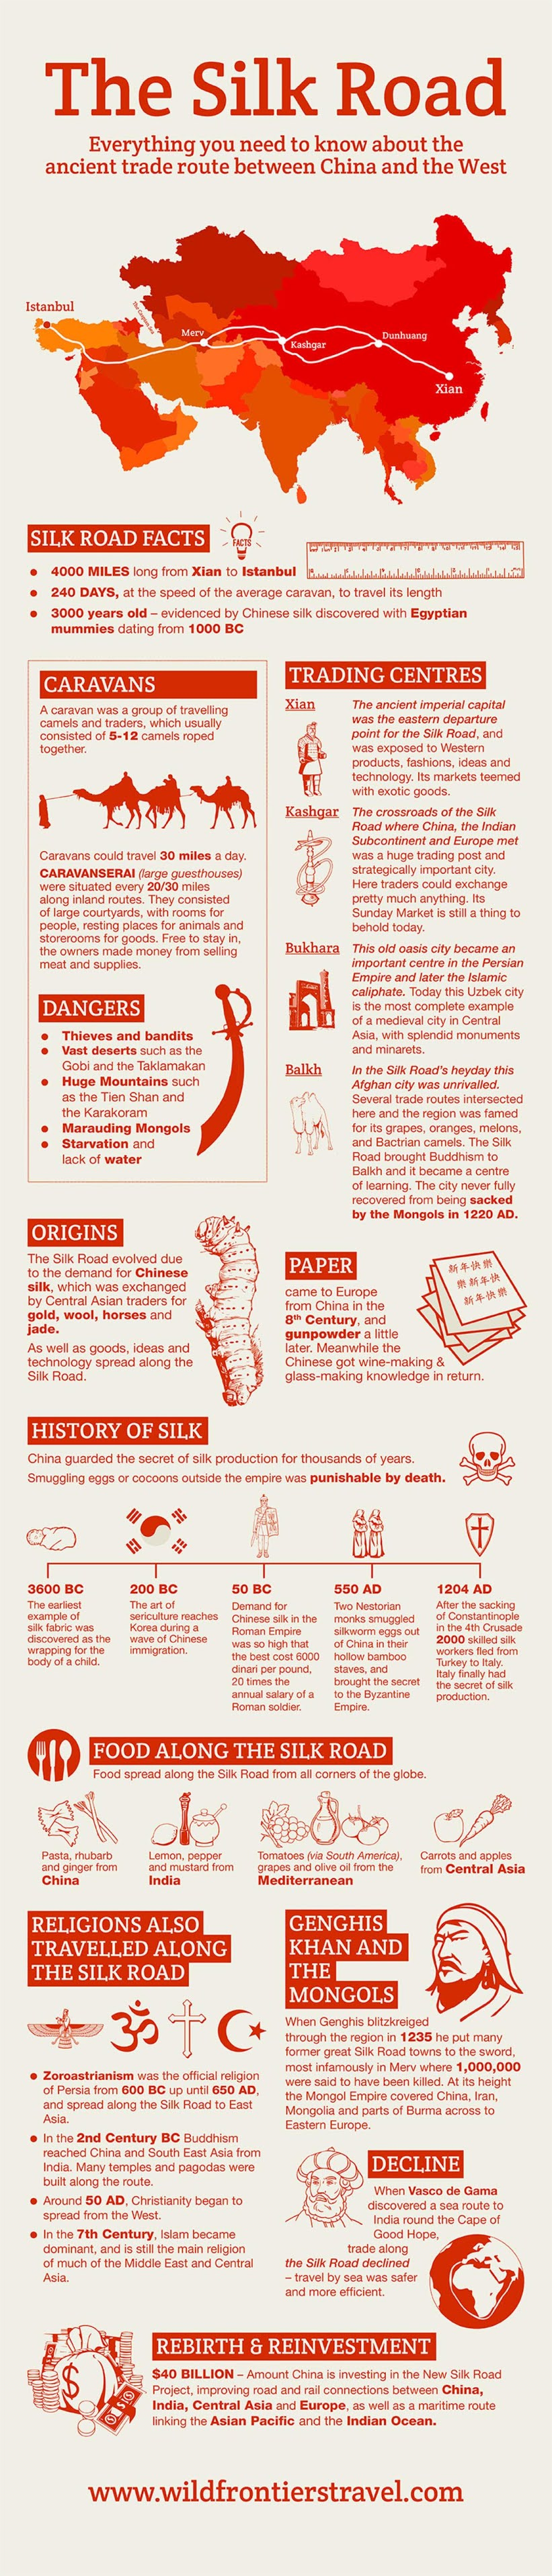 The Silk Road #infographic #Road #Travel #Silk Road